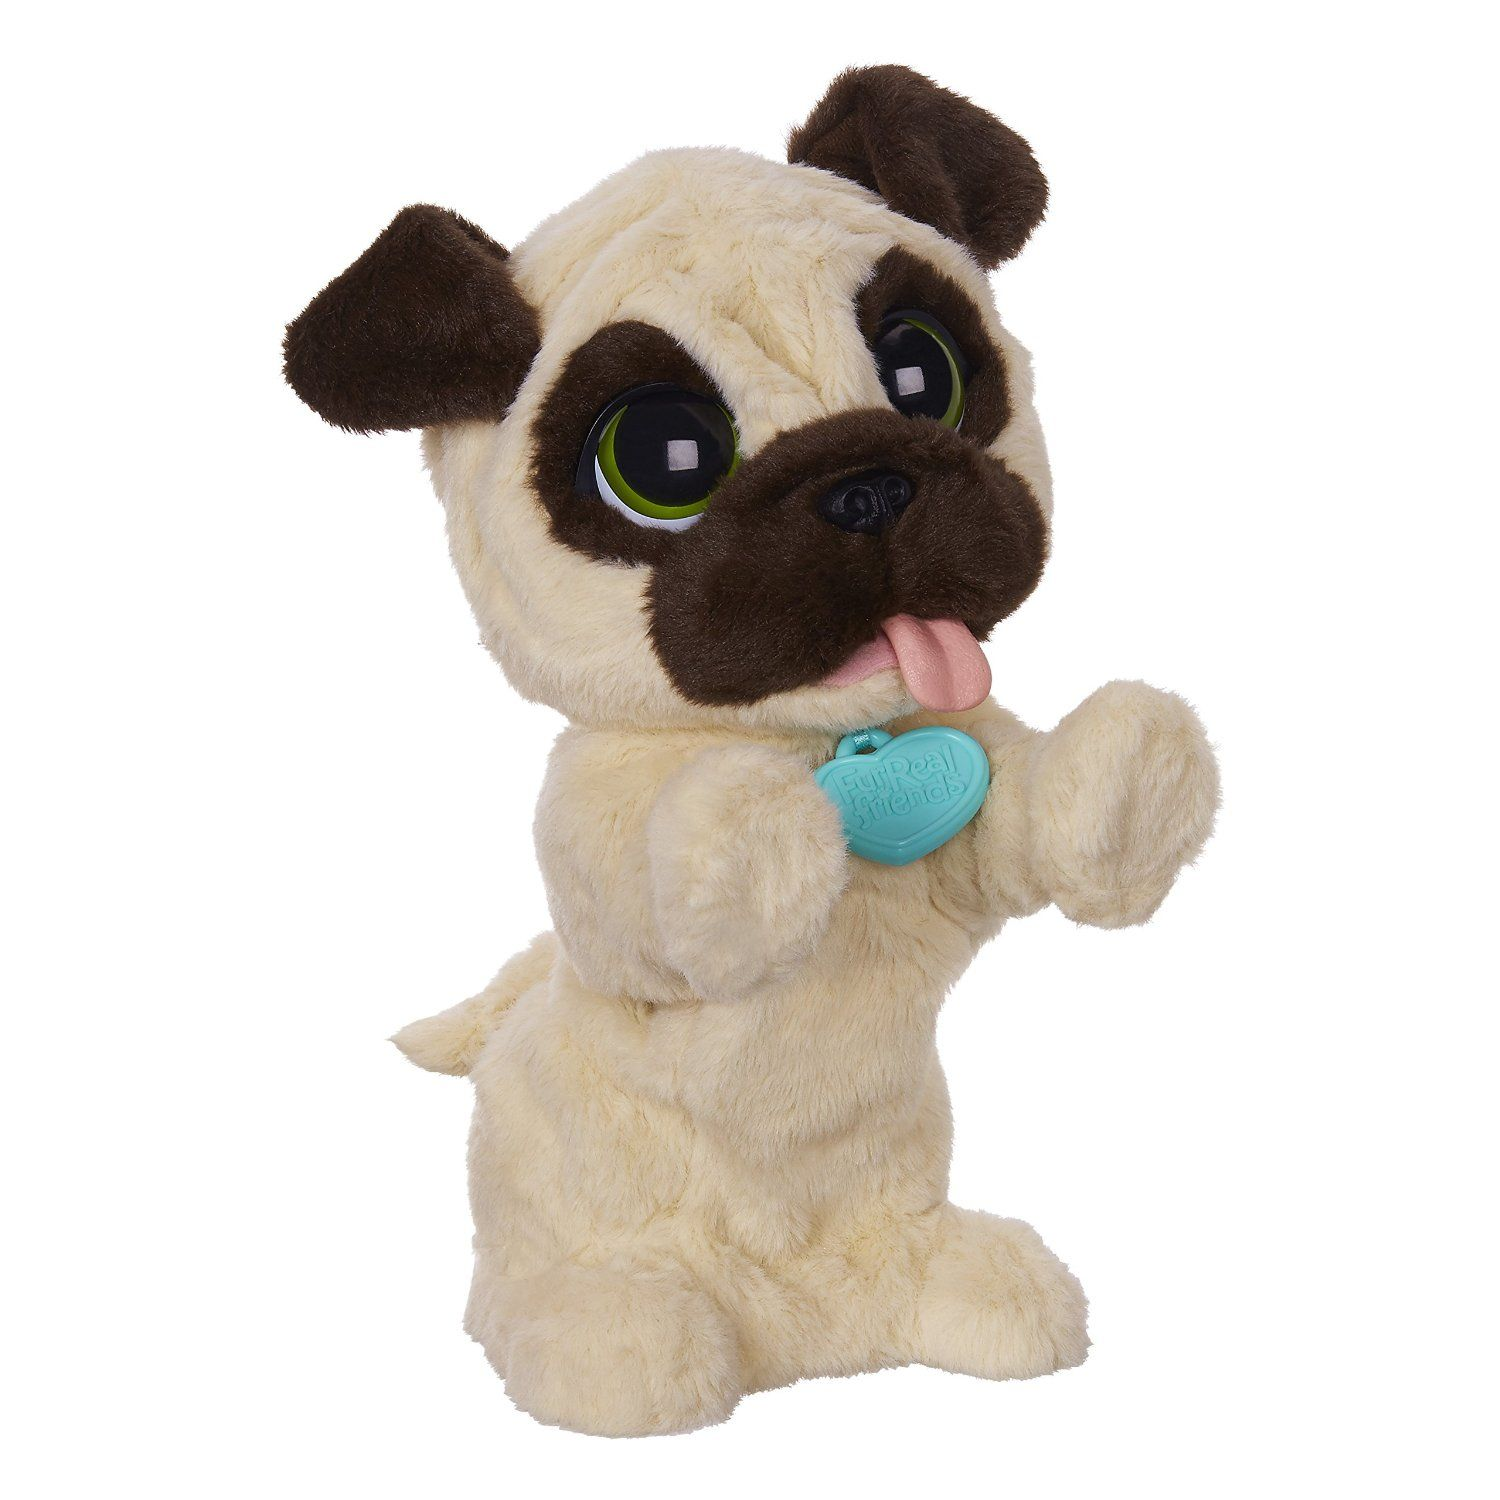 Find The Best Gifts And Toys For 5 Year Old Boys For Their Birthday Or Christmas Fur Real Friends Dog Toys Plush Dog